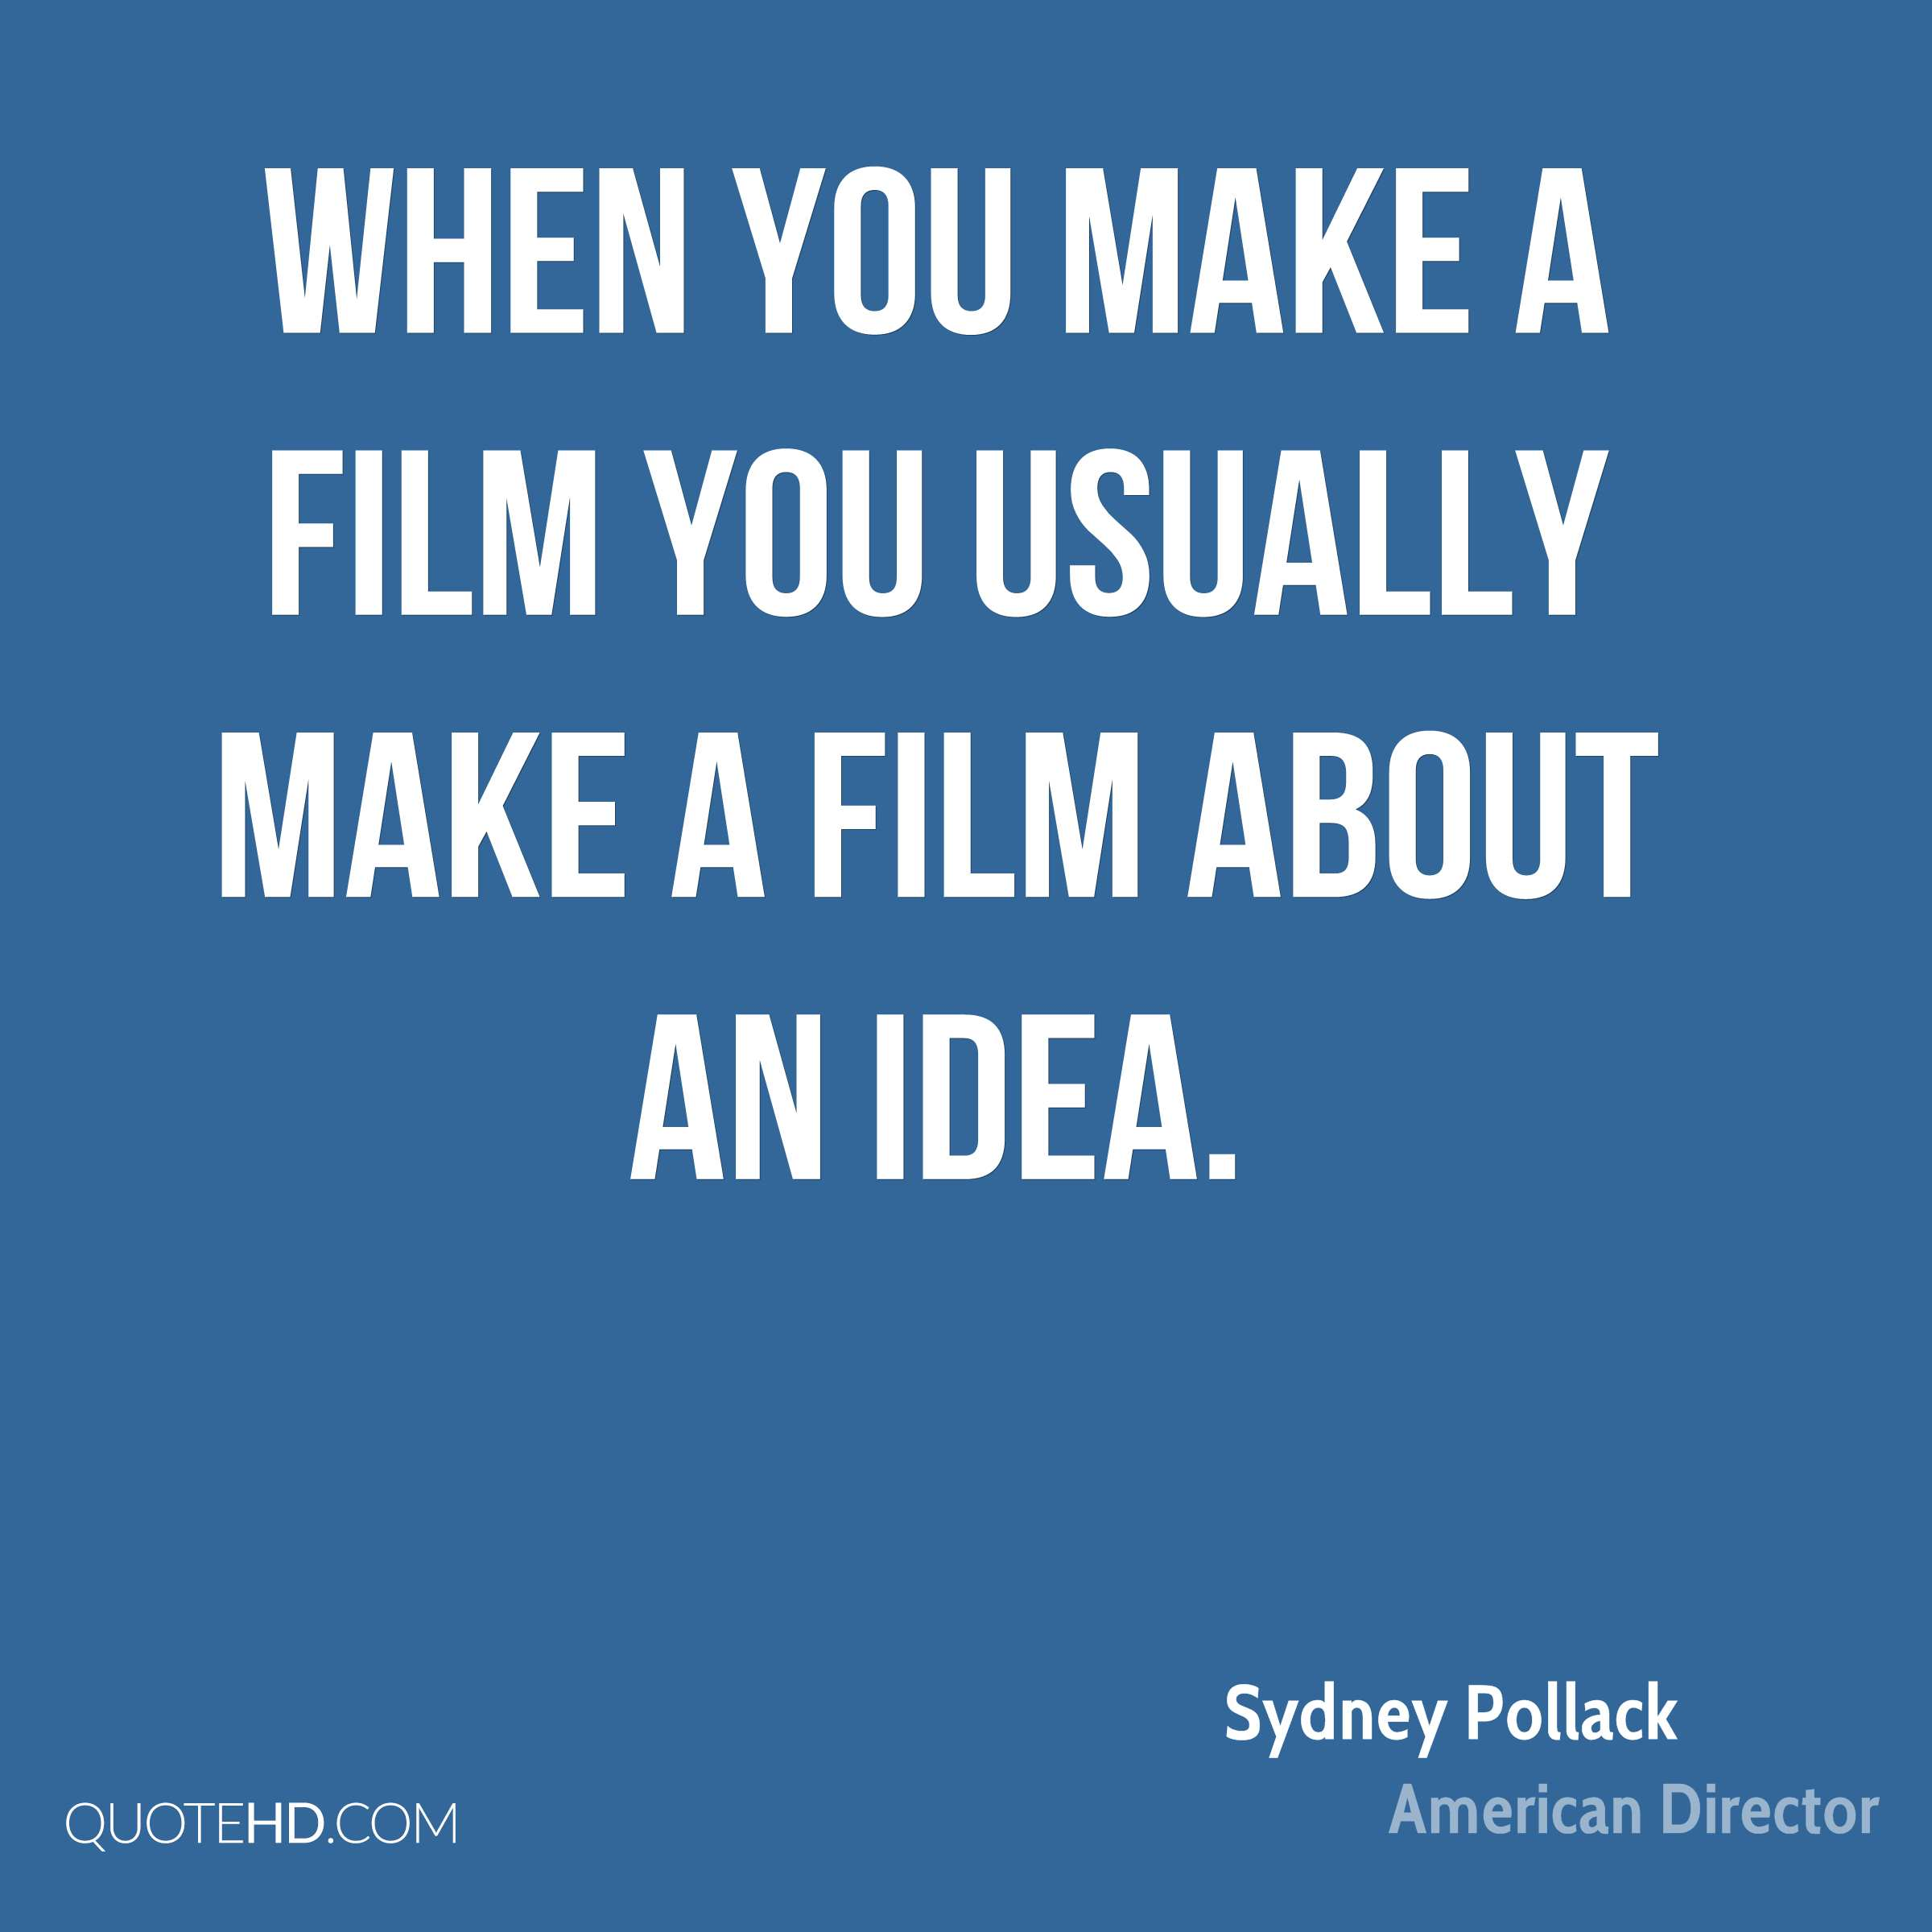 When you make a film you usually make a film about an idea.